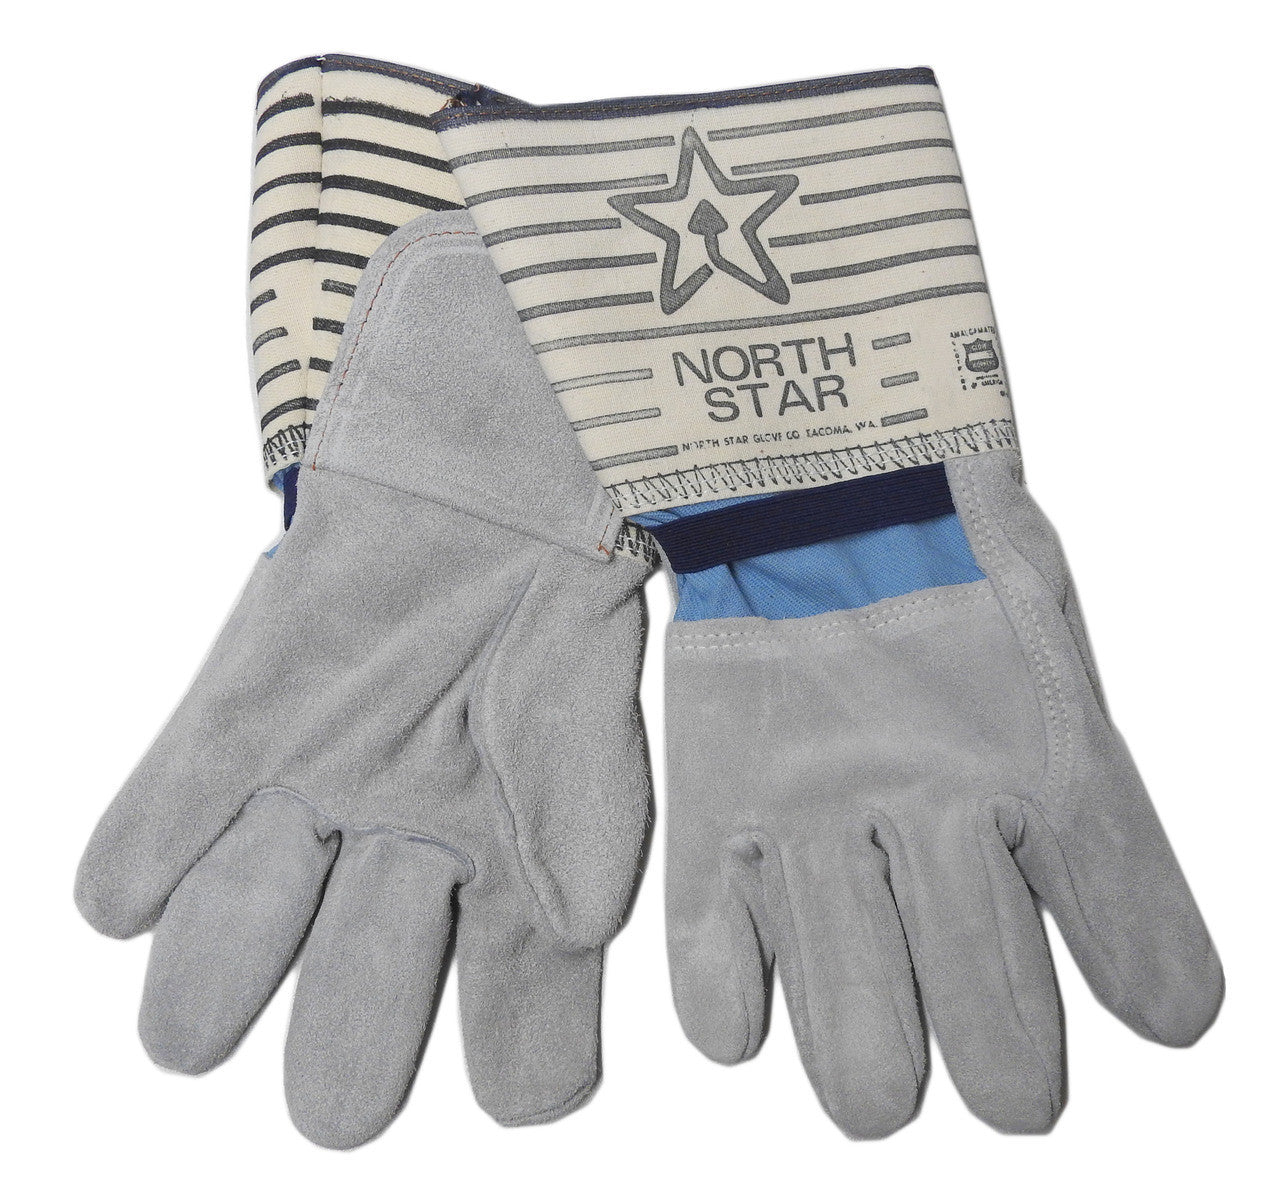 North Star - Linemans Leather Unlined Gauntlet Glove #2945